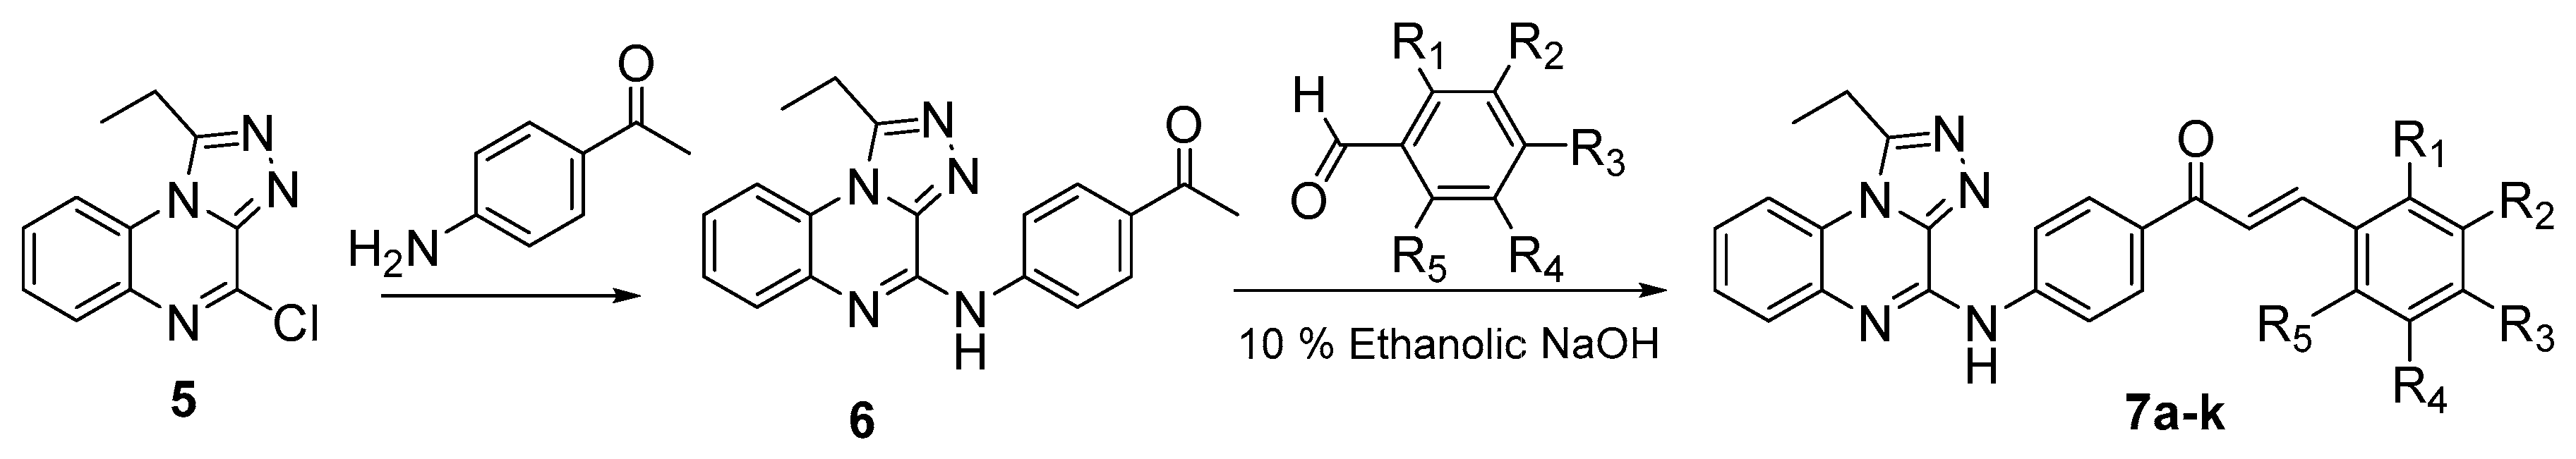 synthesis and evaluation chalcone analogues and